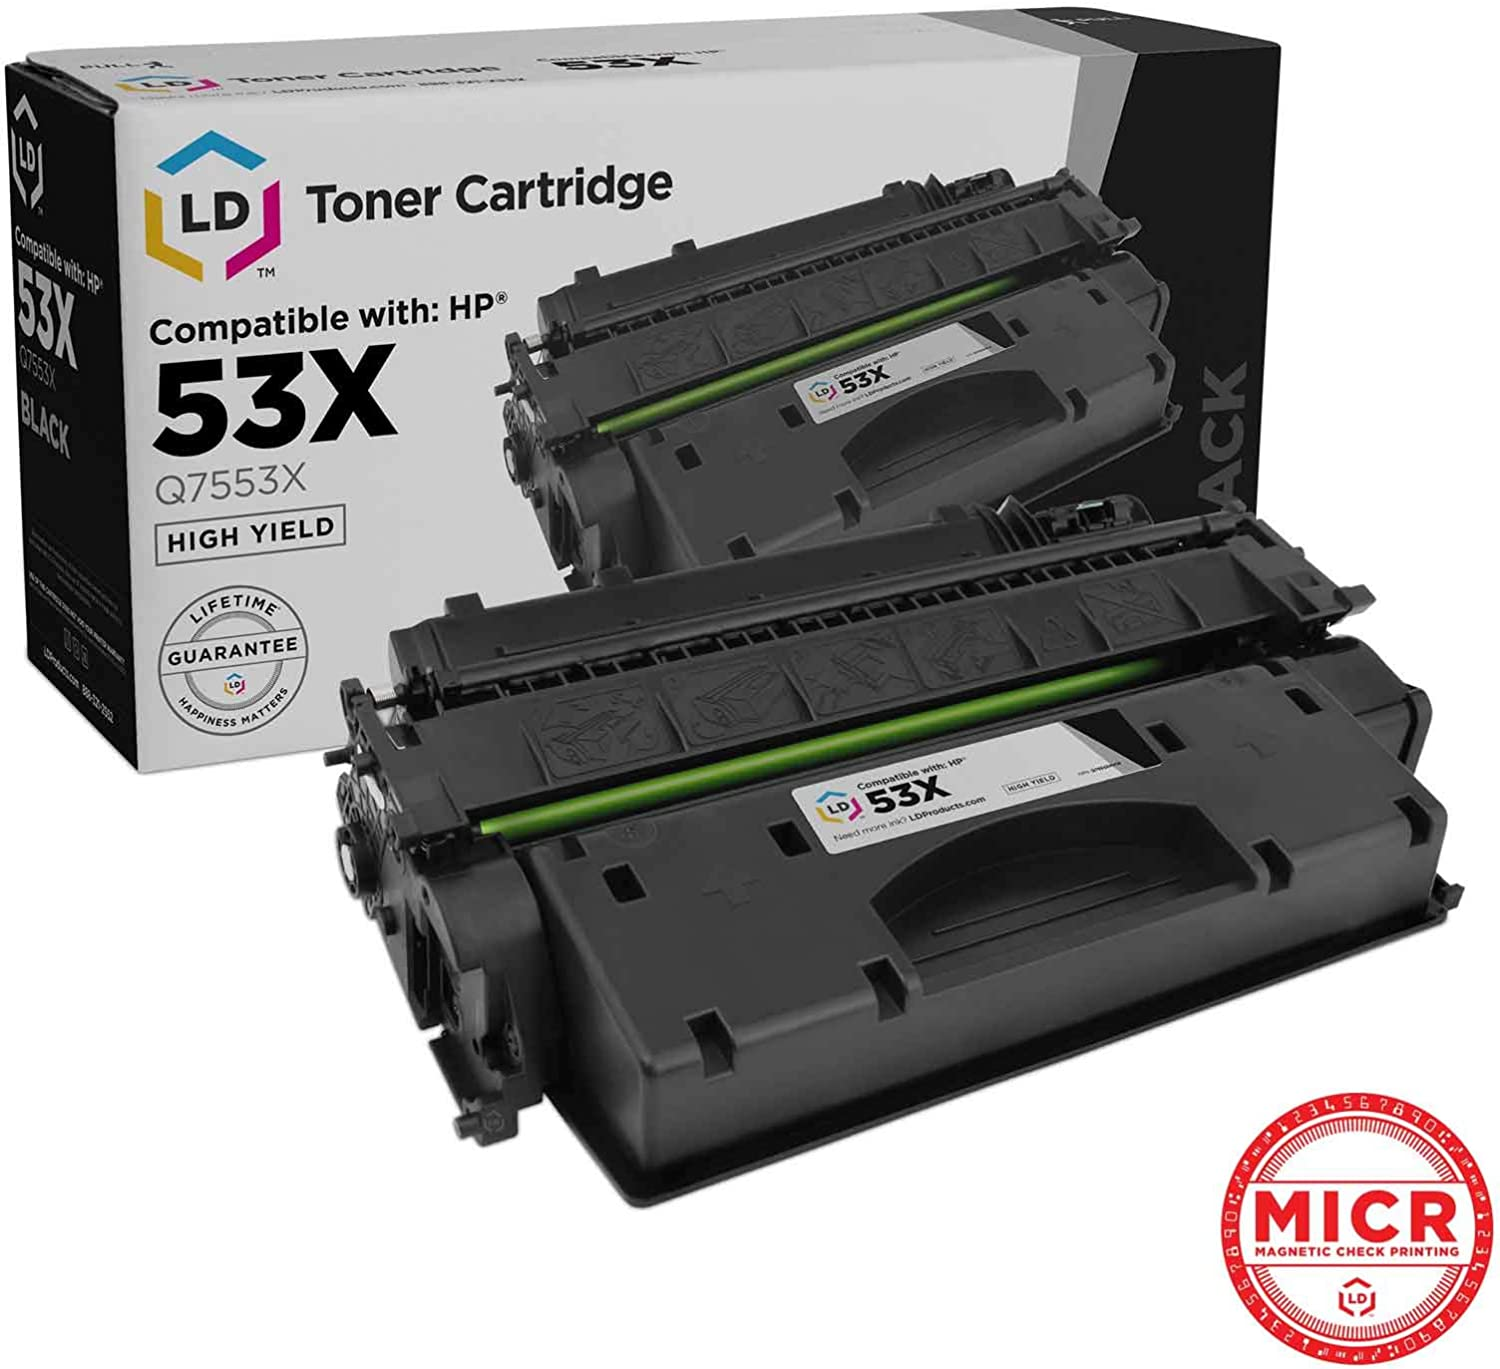 LD Compatible MICR Toner Cartridge Replacement for HP 53X Q7553X High Yield (Black)